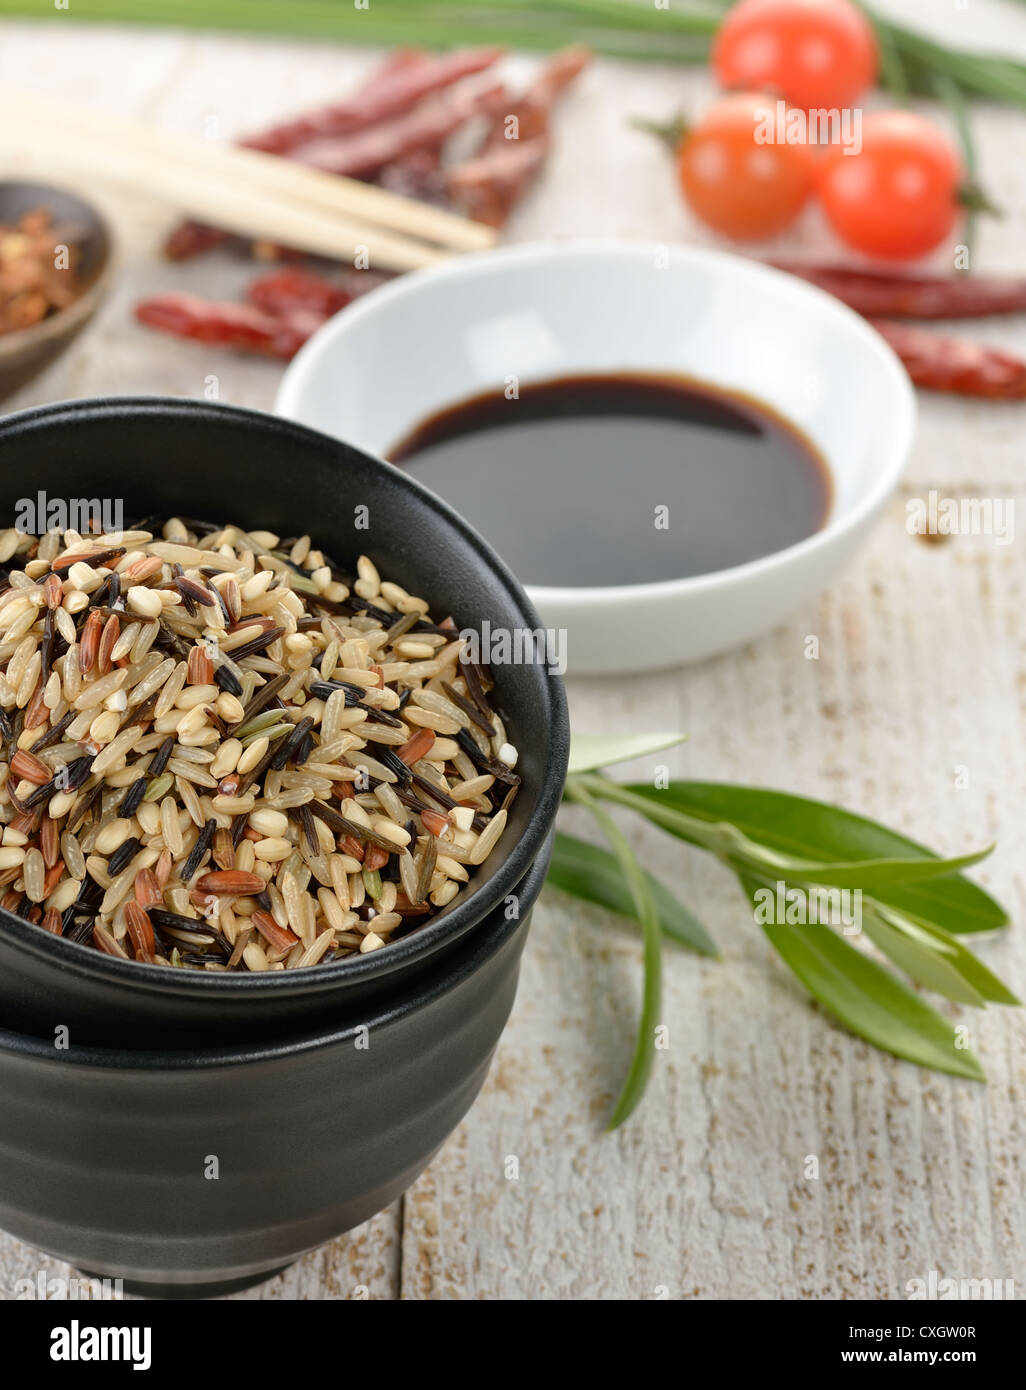 Wild Rice And A Soy Sauce In The Bowls - Stock Image